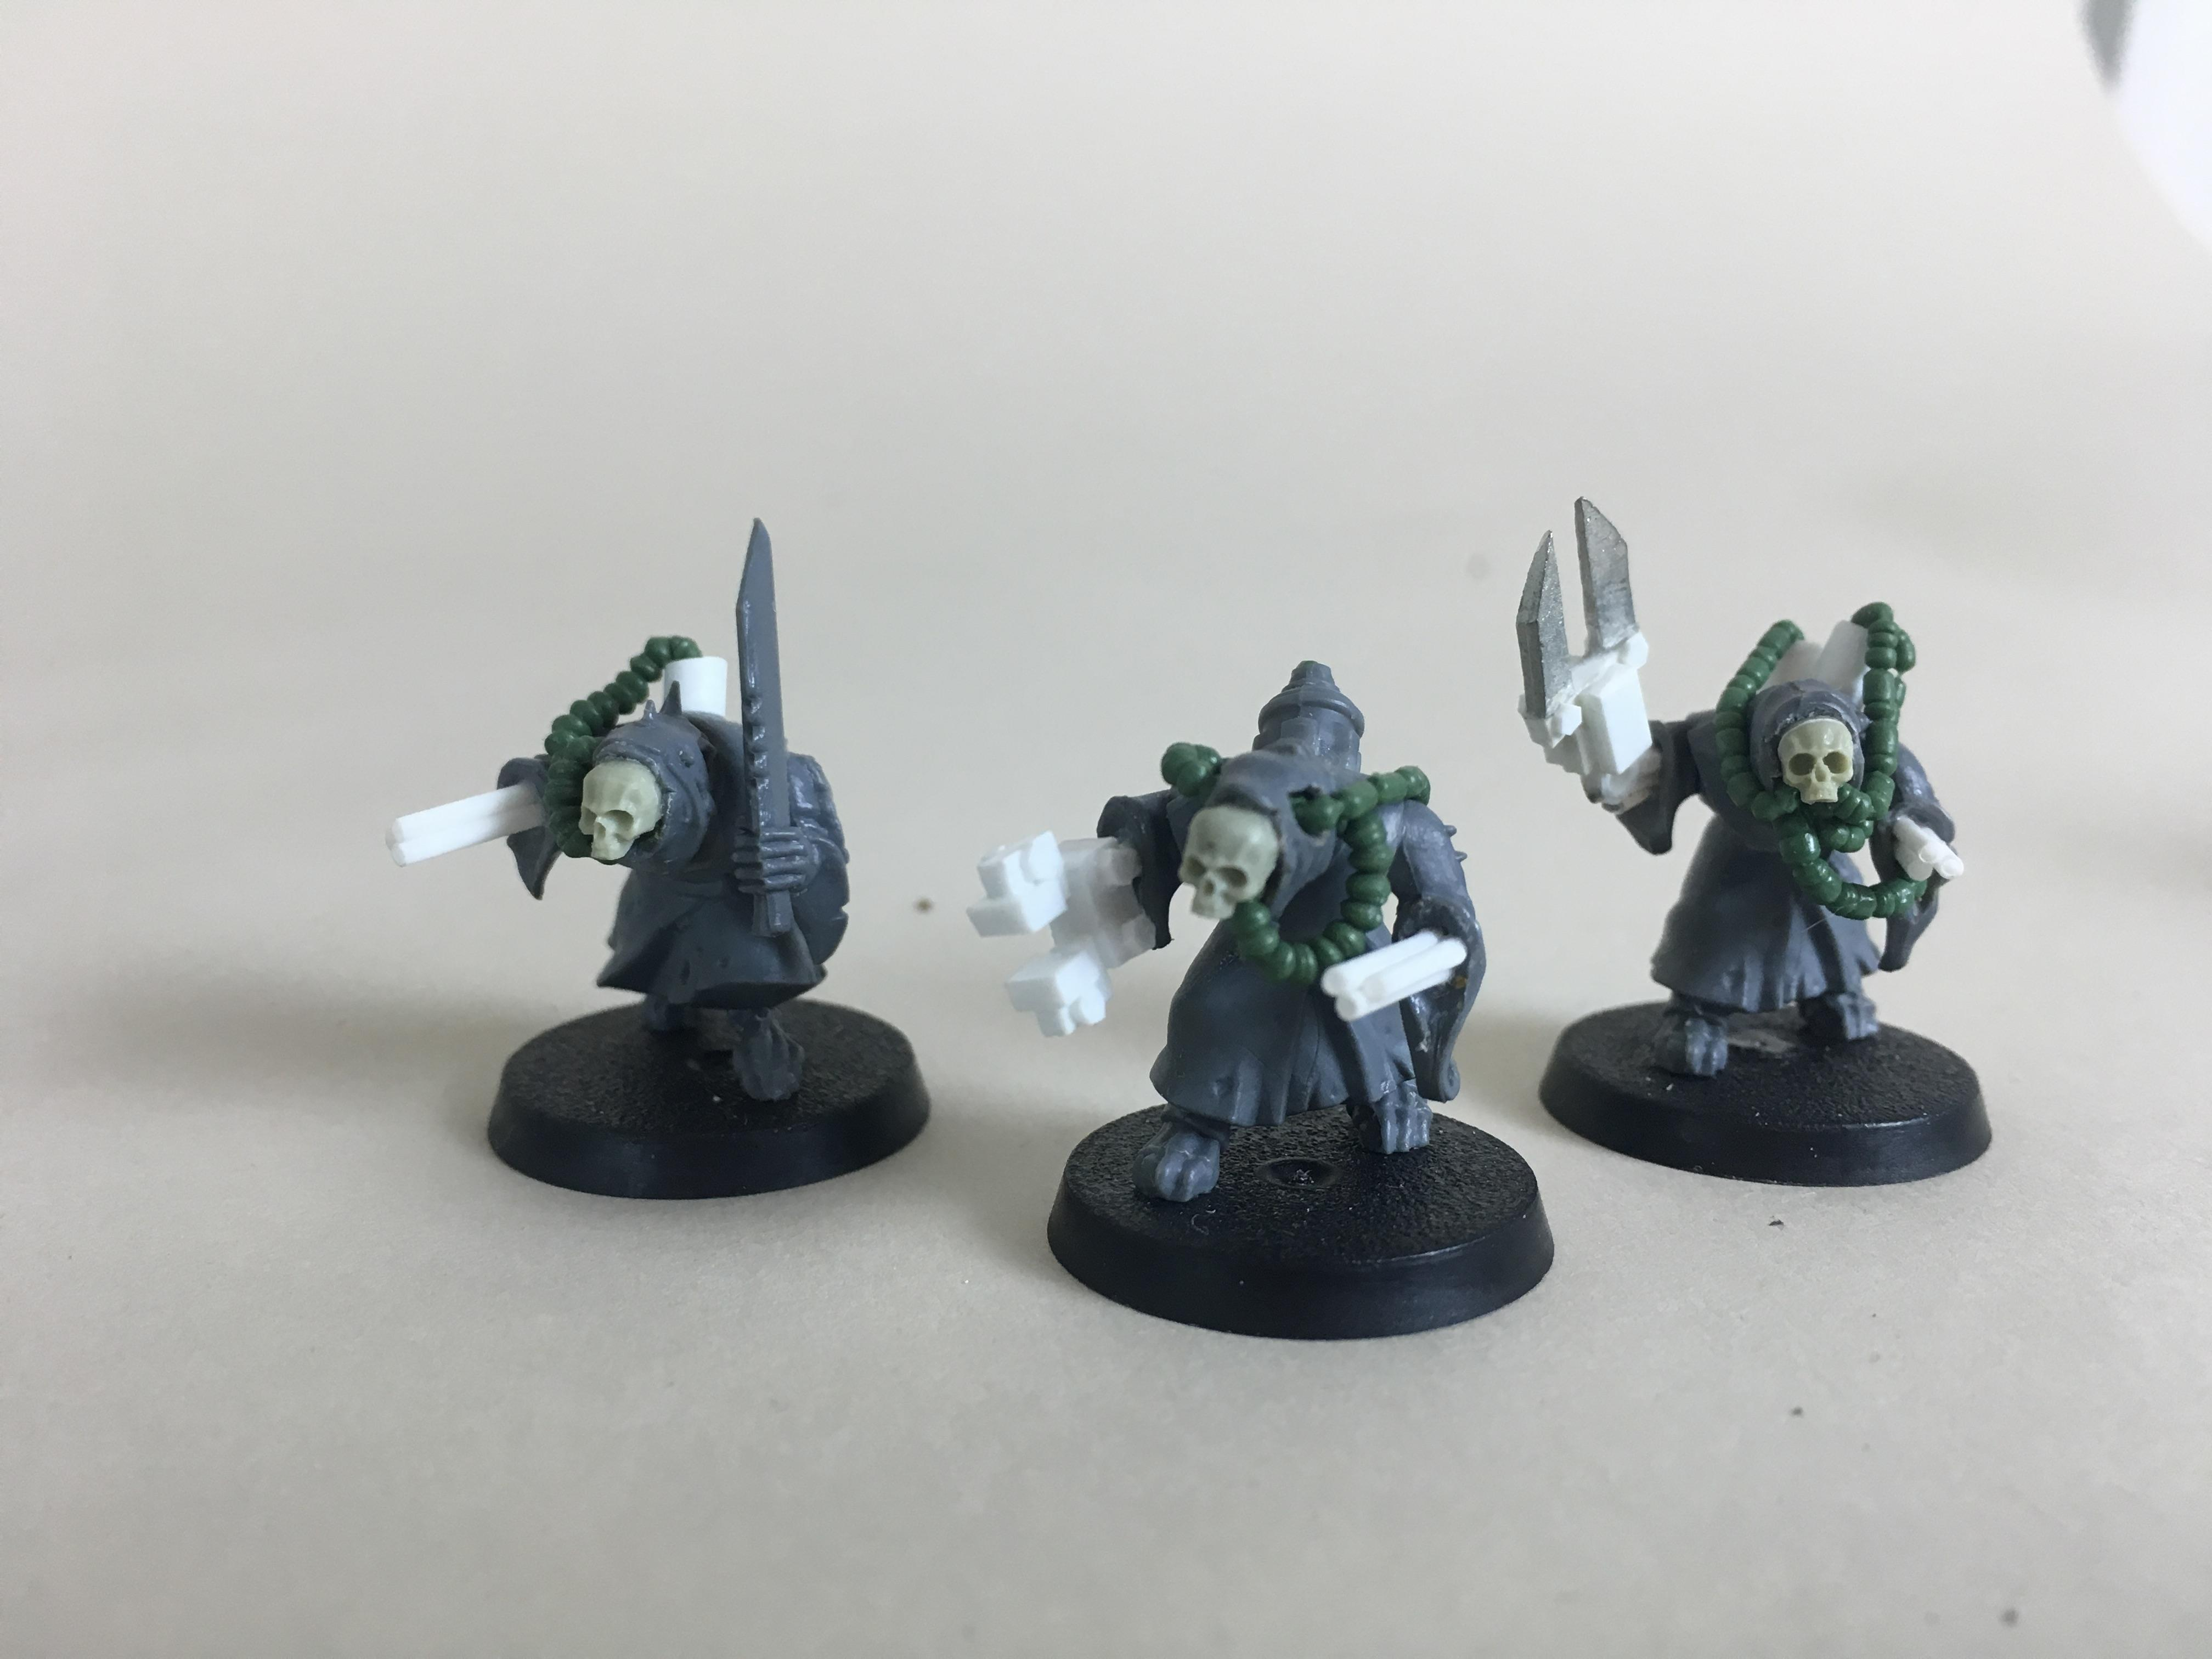 Acolytes, Adeptus Mechanicus, Chaos, Chaos Spawn, Dark Mechanicus, Greater Chaos Spawn, Lords Of Decay, Mechanicus, Nurgle, Scratch Build, Skitarii, Spawn